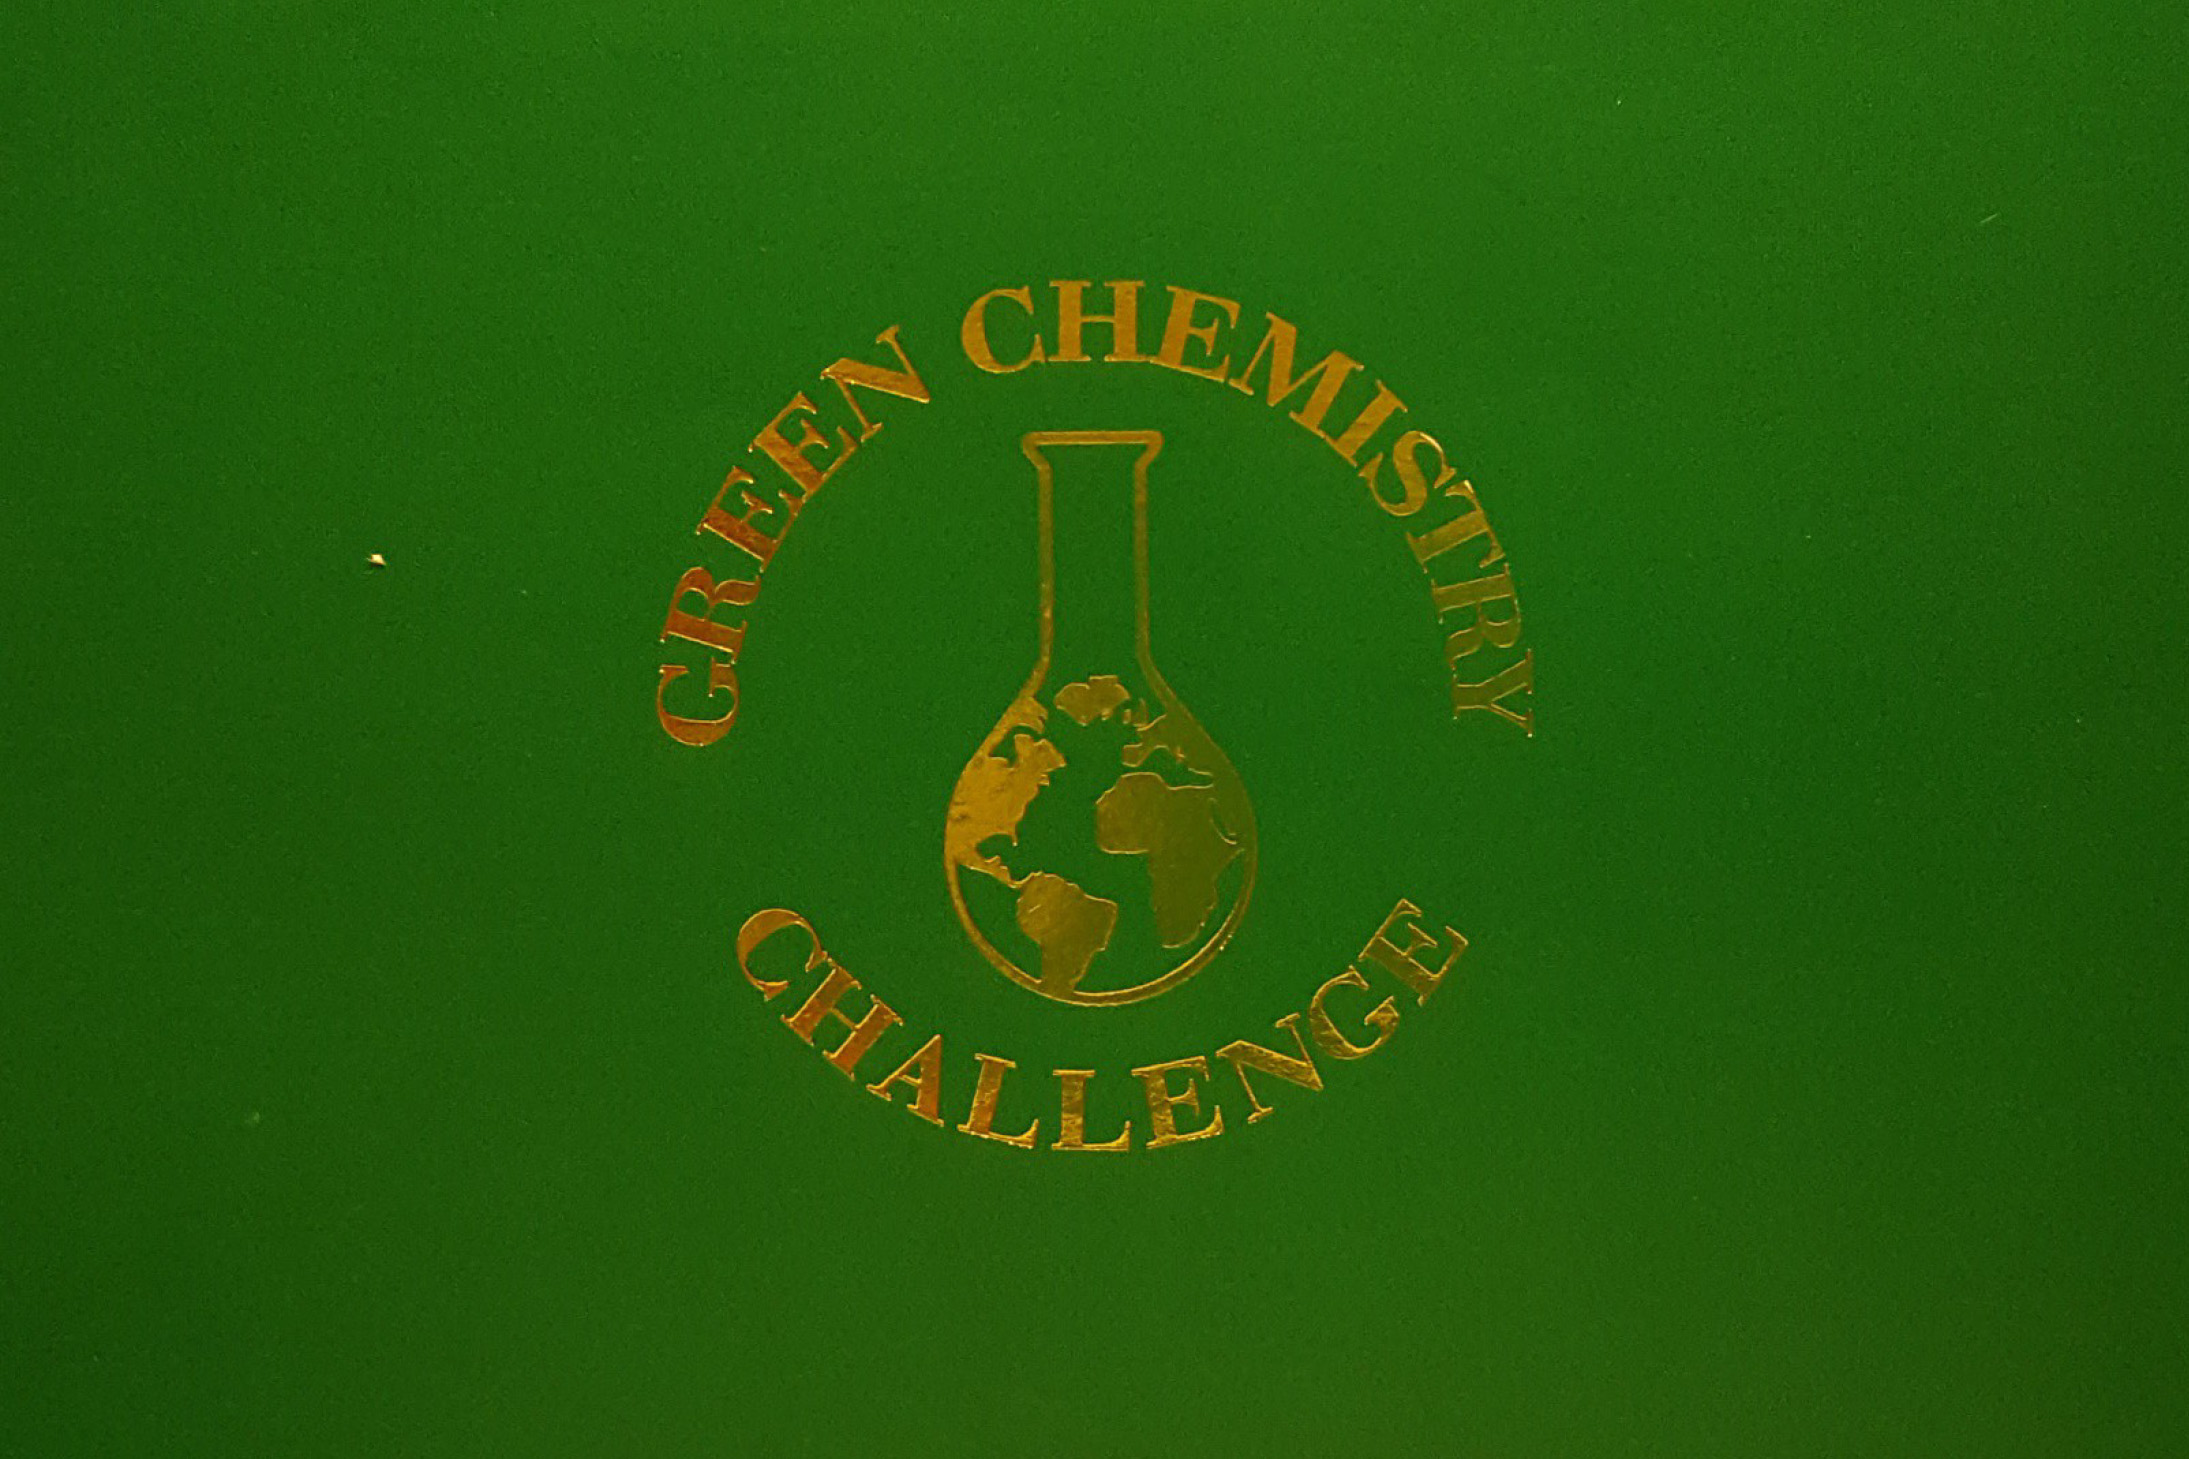 EPA Green Chemistry Award Cover